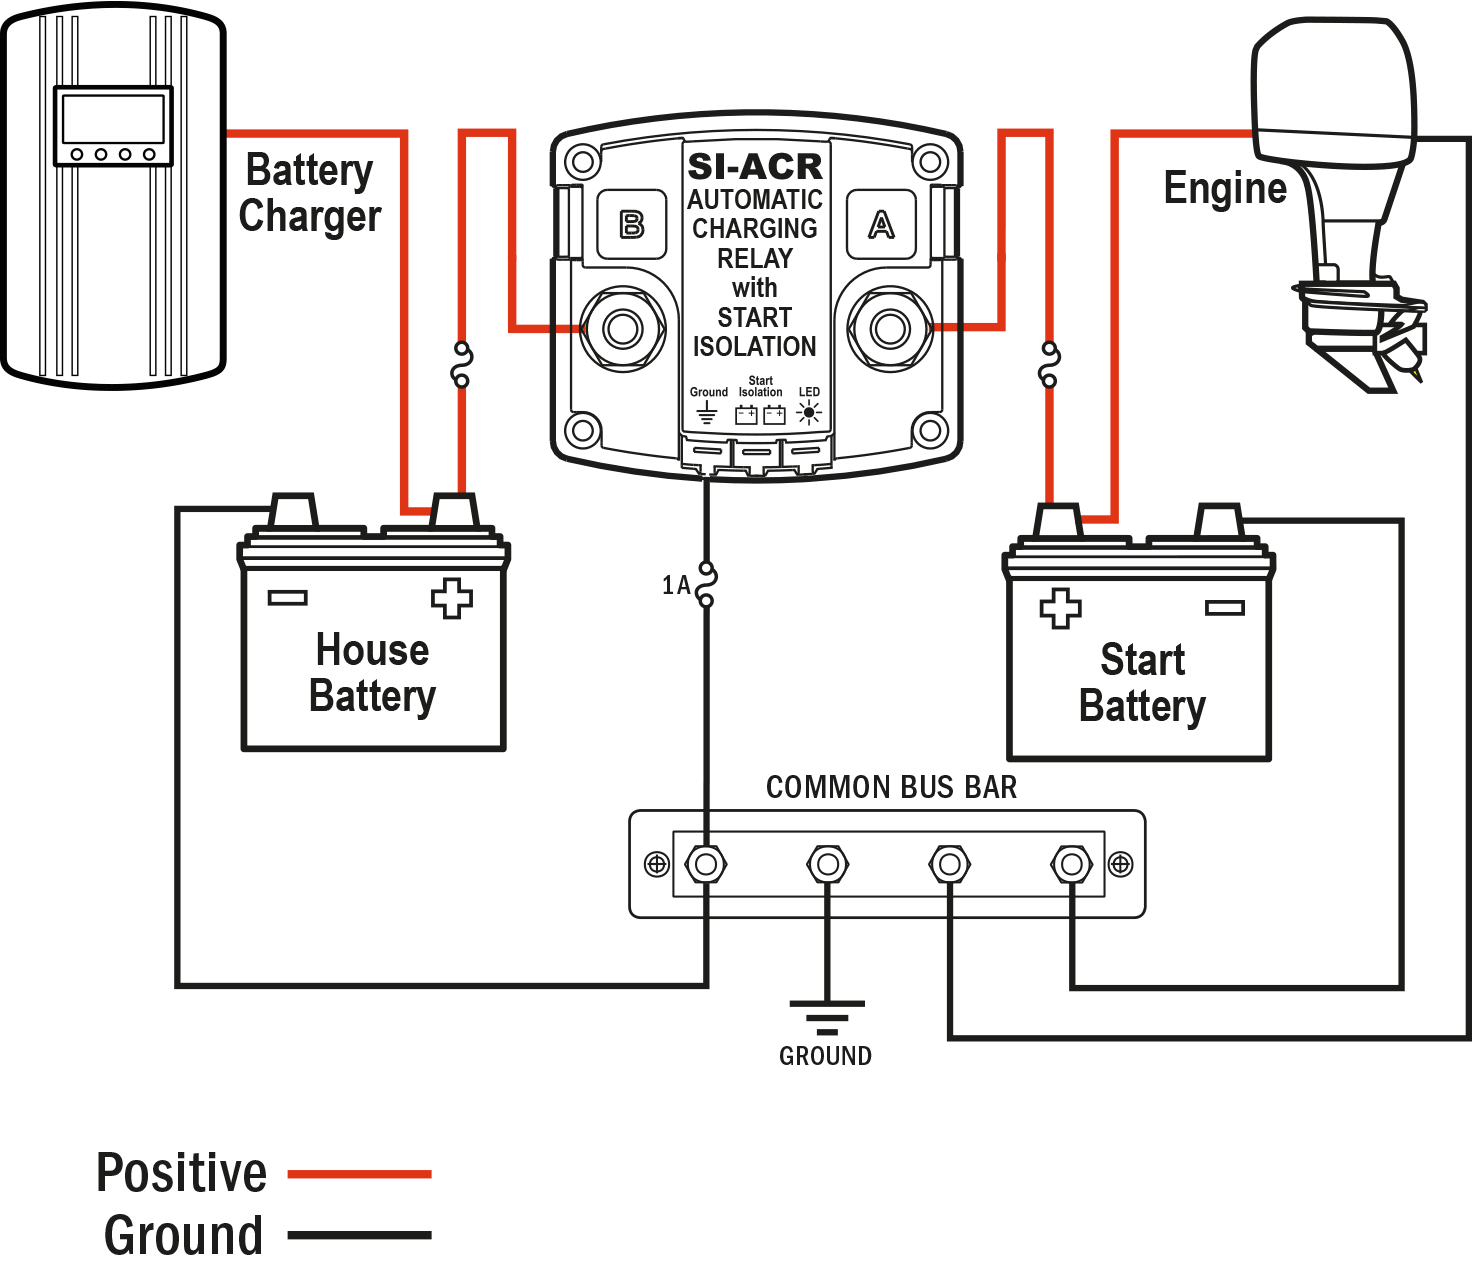 dual battery setup boat diagram solving problems using venn diagrams worksheets wiring for blue sea add a switch blog si acr automatic charging relay 12 24v dc 120a systems